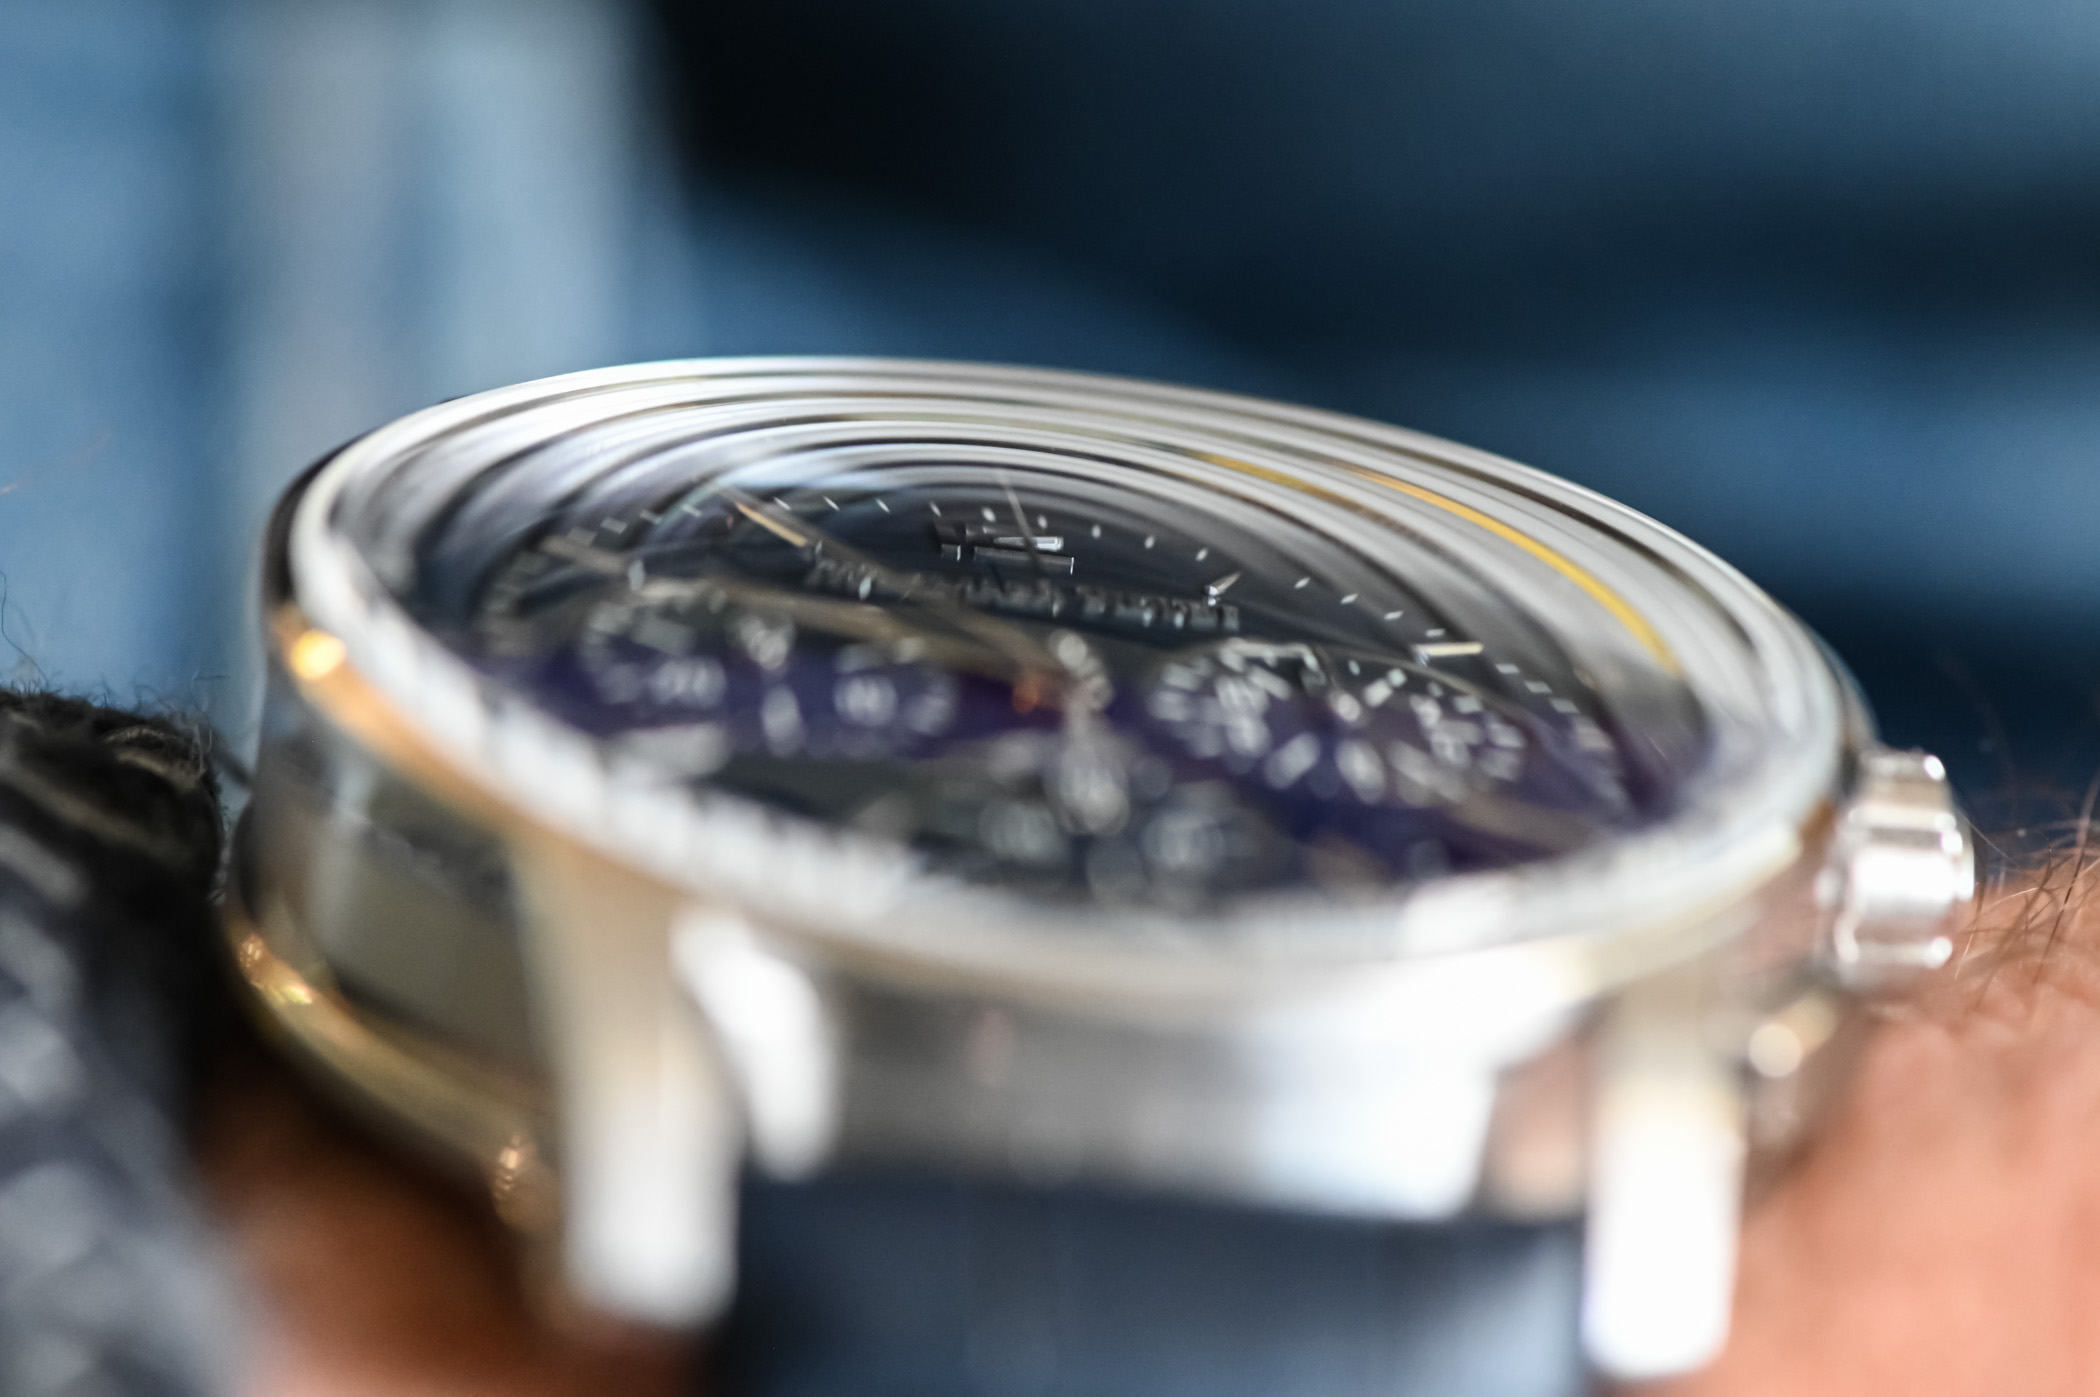 Code 11.59 by Audemars Piguet Selfwinding Chronograph Review - crystal